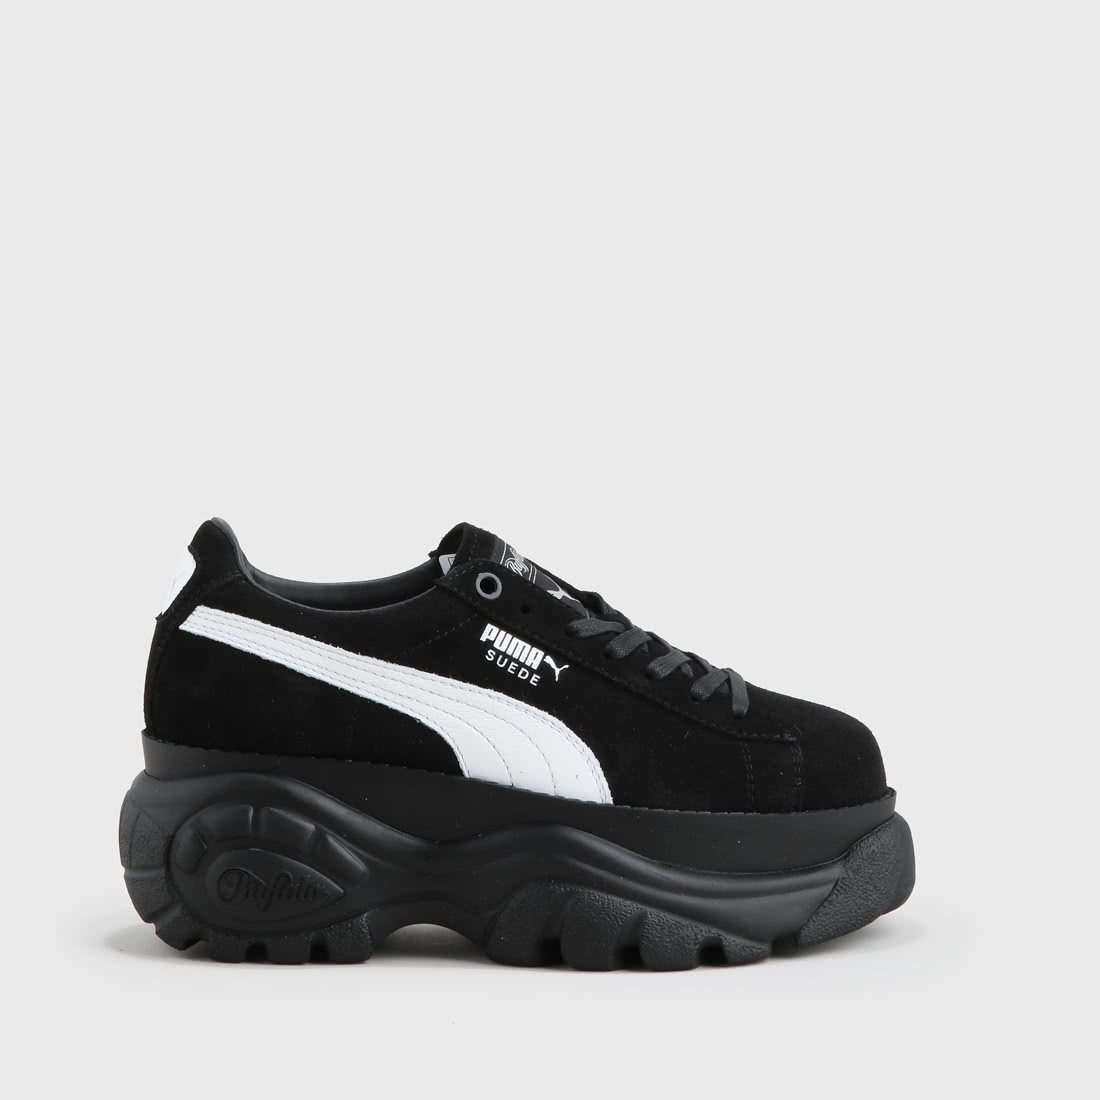 Puma x Buffalo London Suede Platform black buy online in BUFFALO ... 6856b8b2f